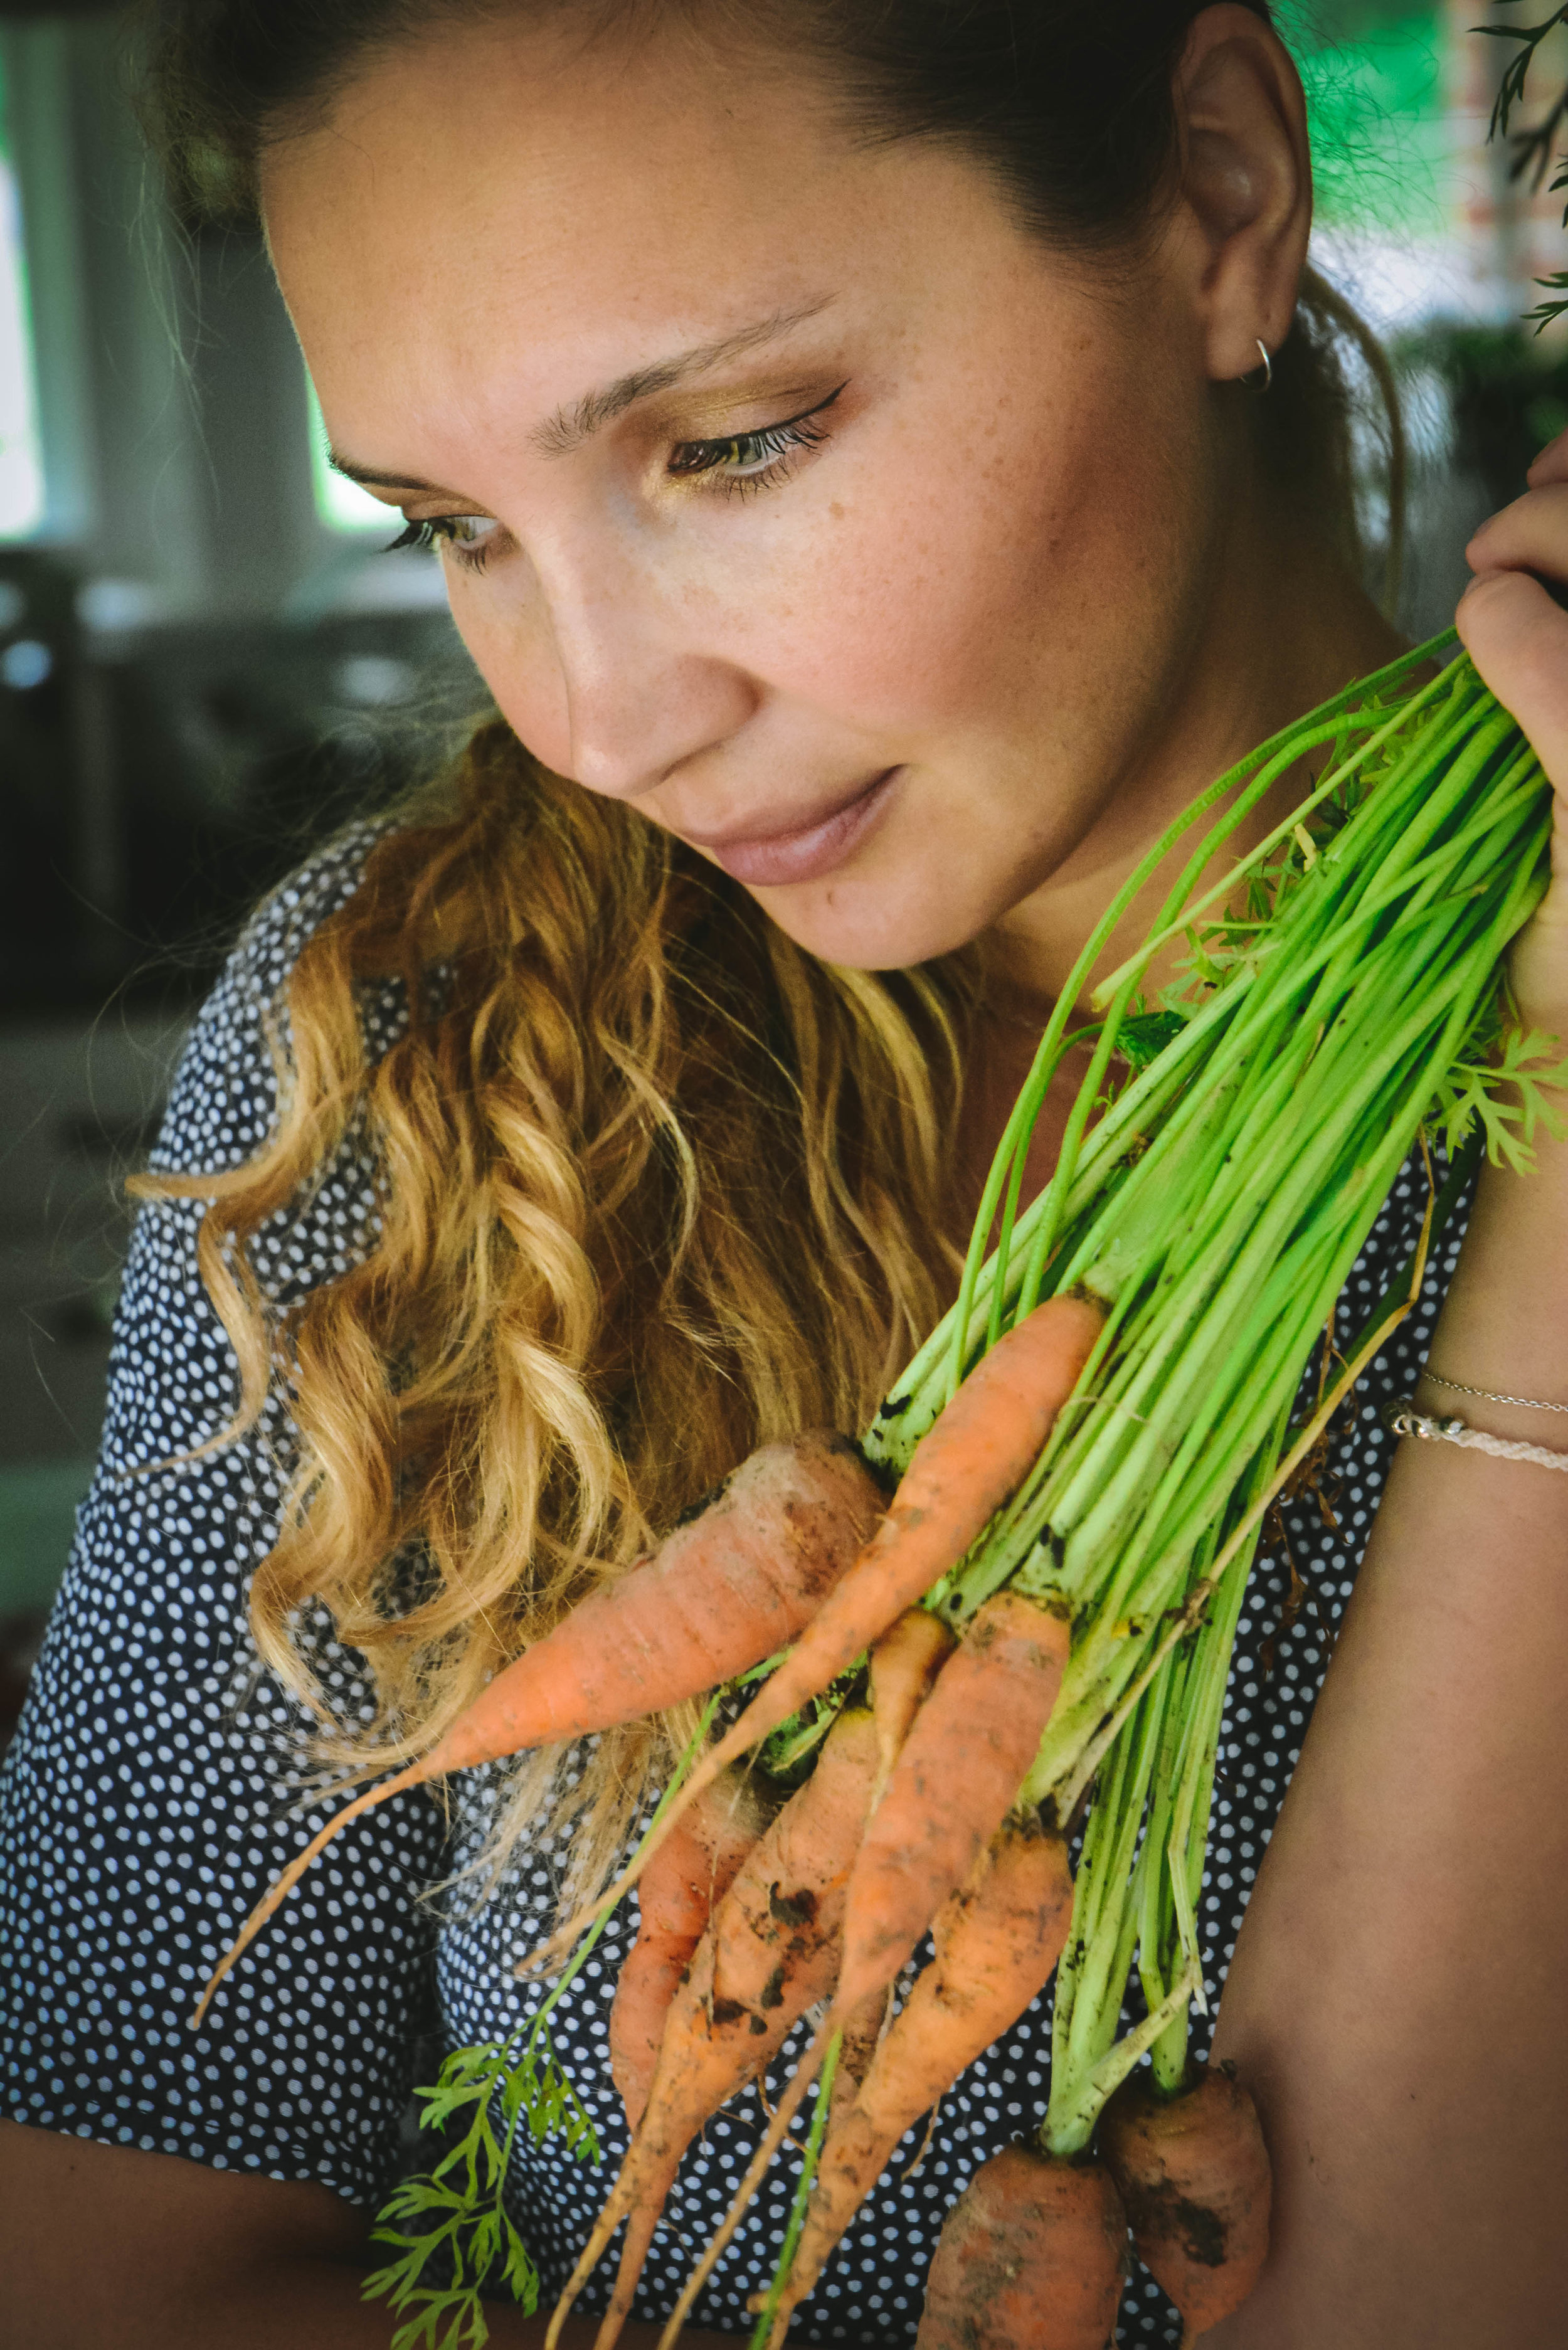 Woman holding carrots